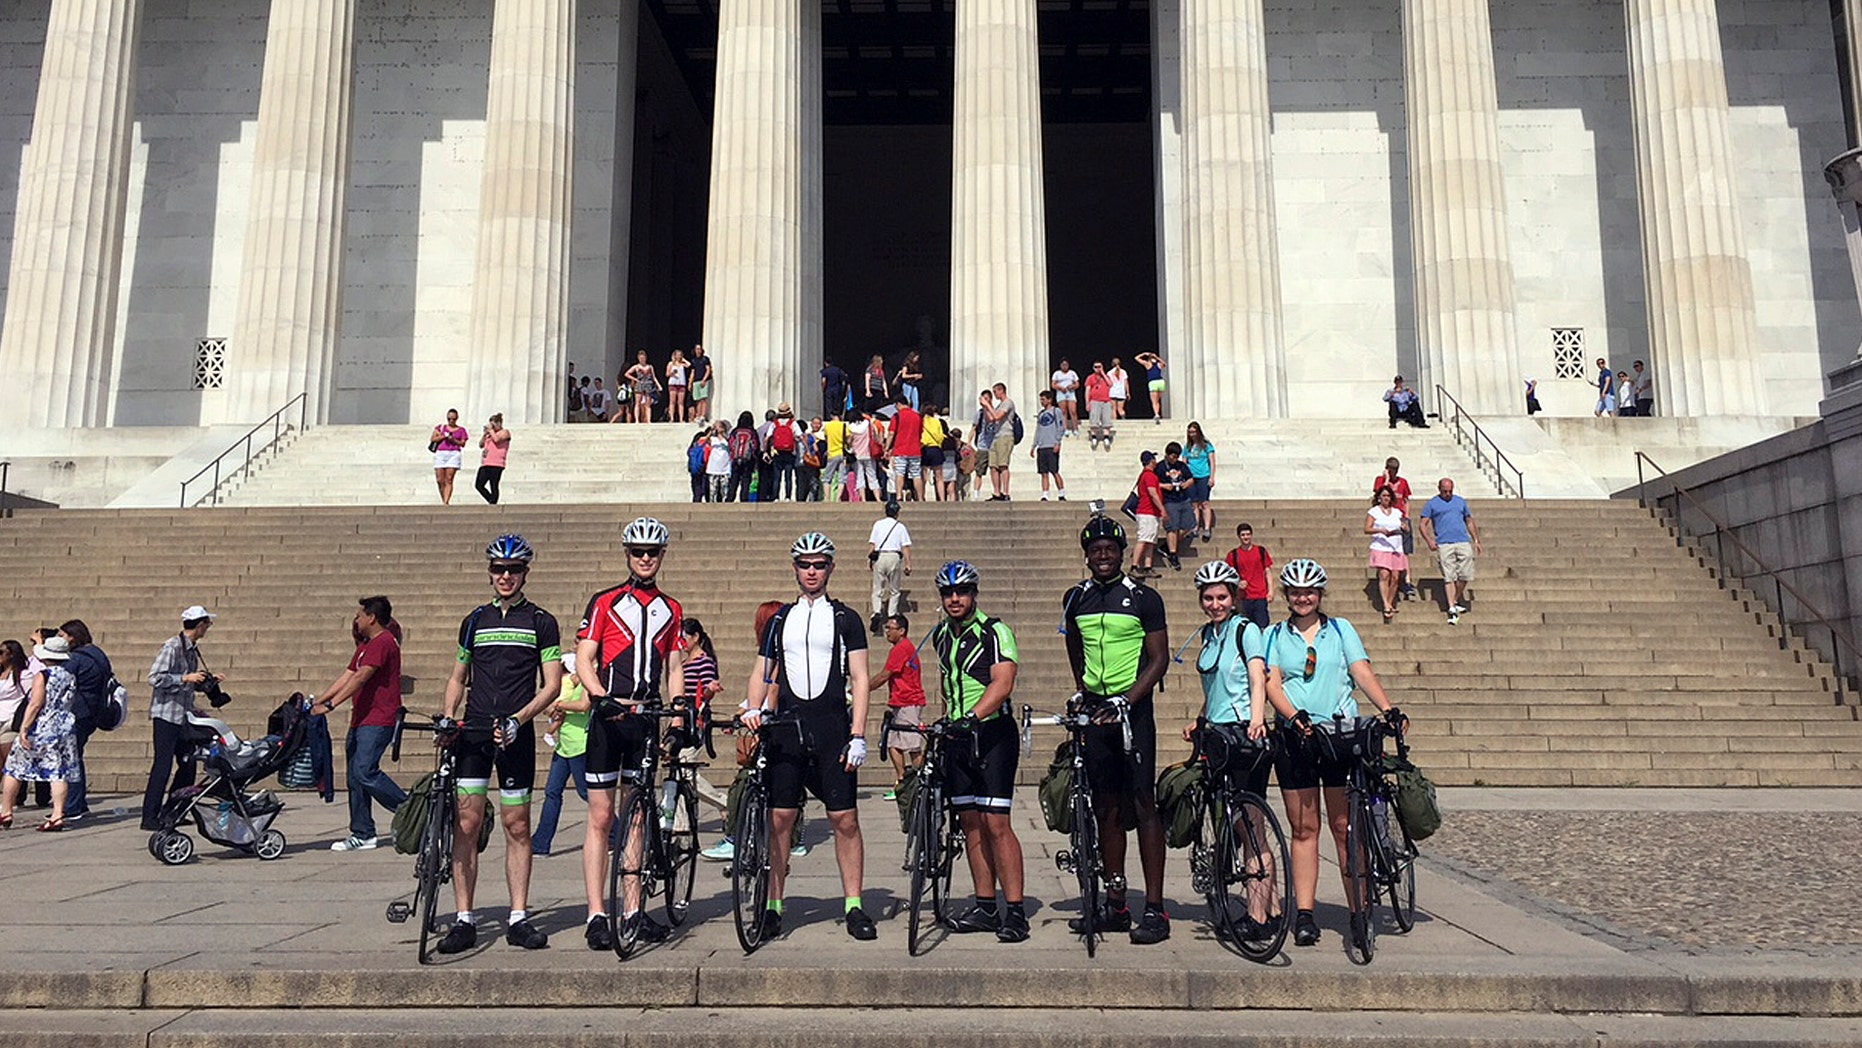 In this June 1, 2015 photo provided by Drew Bent, seven students from Harvard and MIT pose with their bicycles at the Lincoln Memorial in Washington. The seven are participating in a project called Spokes and are cycling across America, stopping in many rural towns to get students interested in science through hands-on workshops. (Courtesy of Drew Bent via AP)